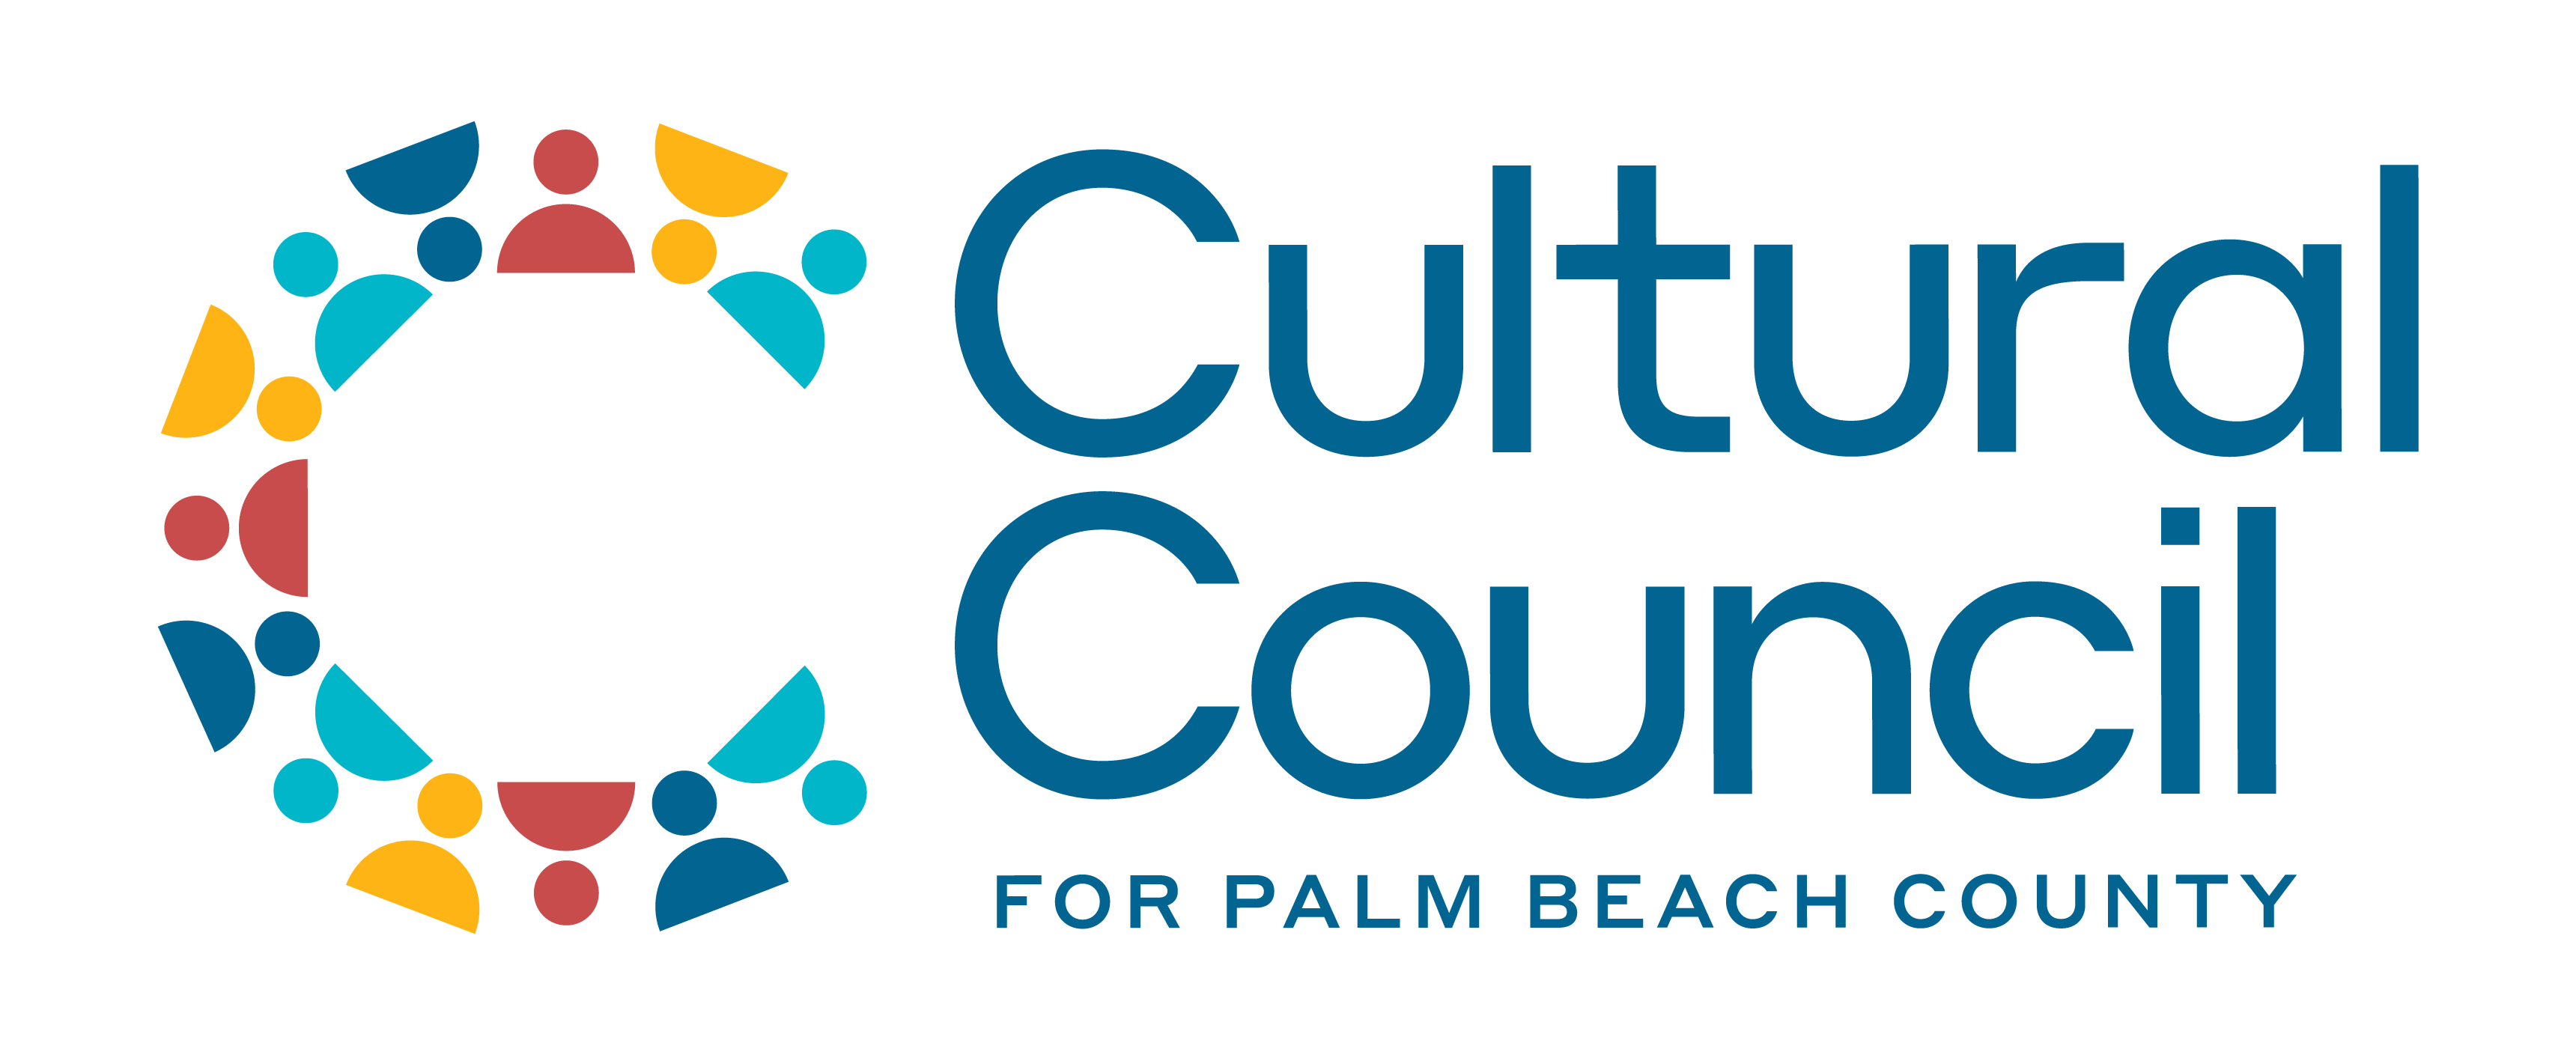 Cultural Council for Palm Beach County 2020 logo - full color